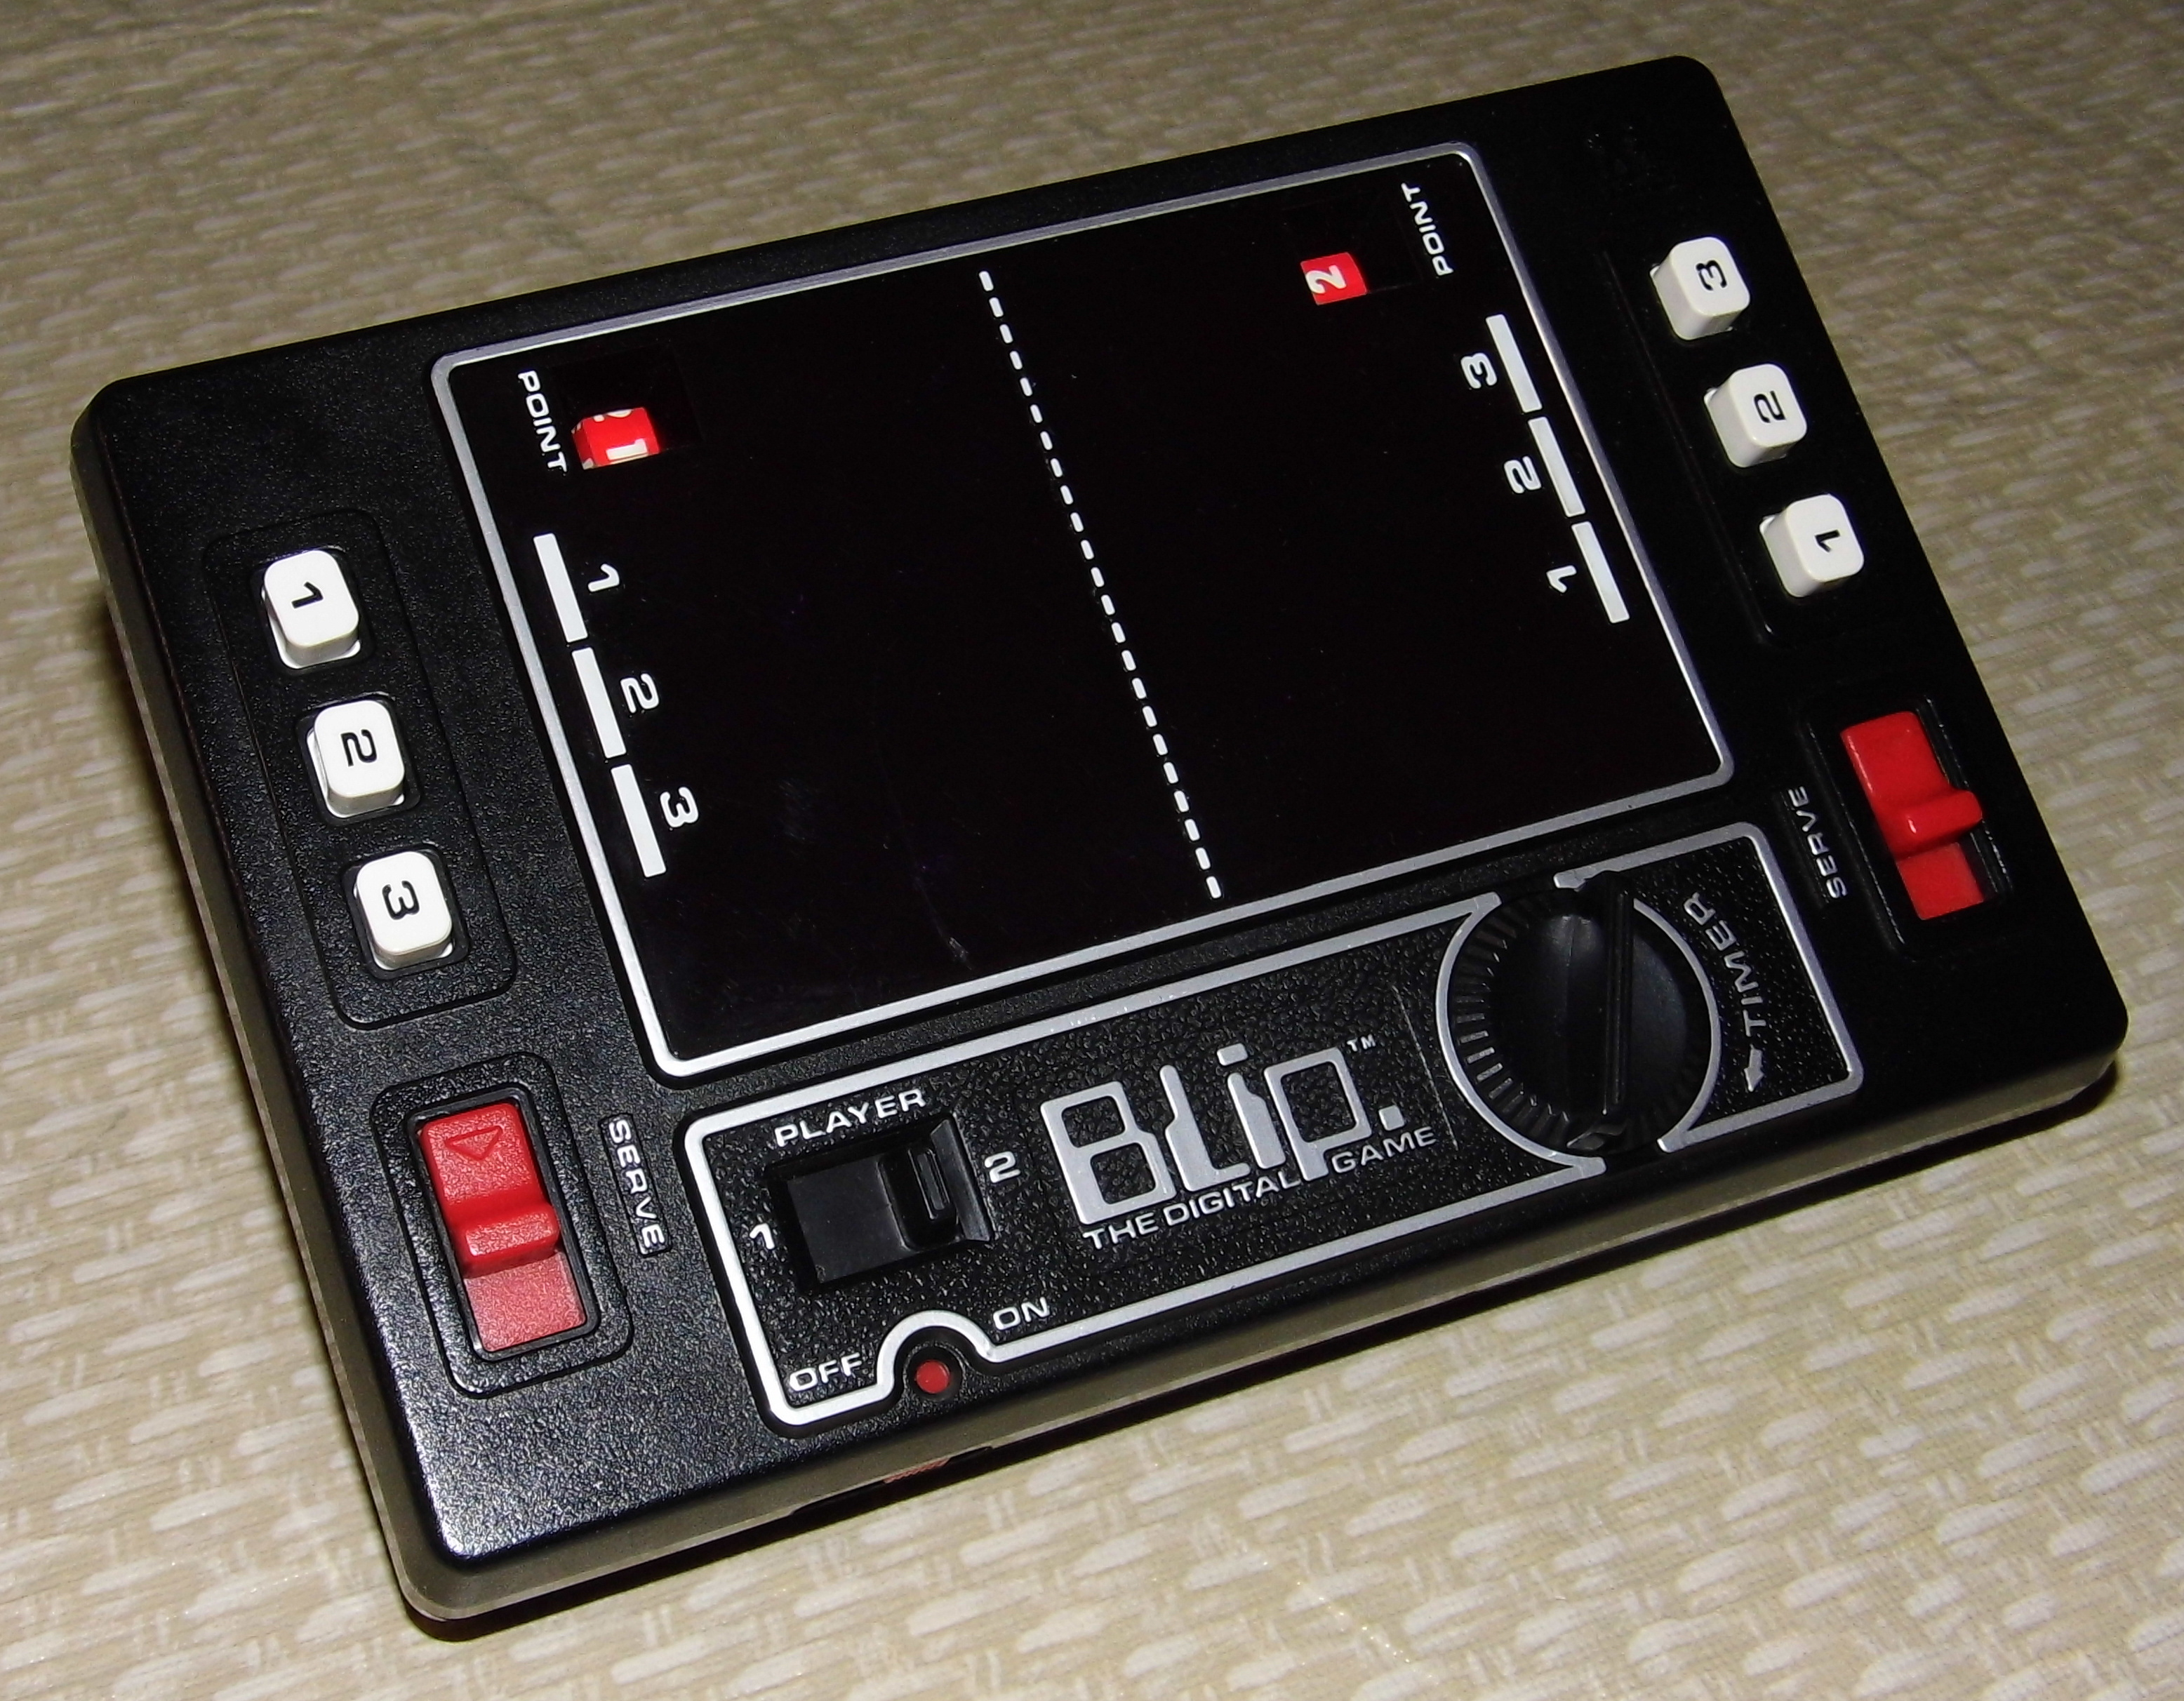 fileblip the digital game by tomy model no 7018